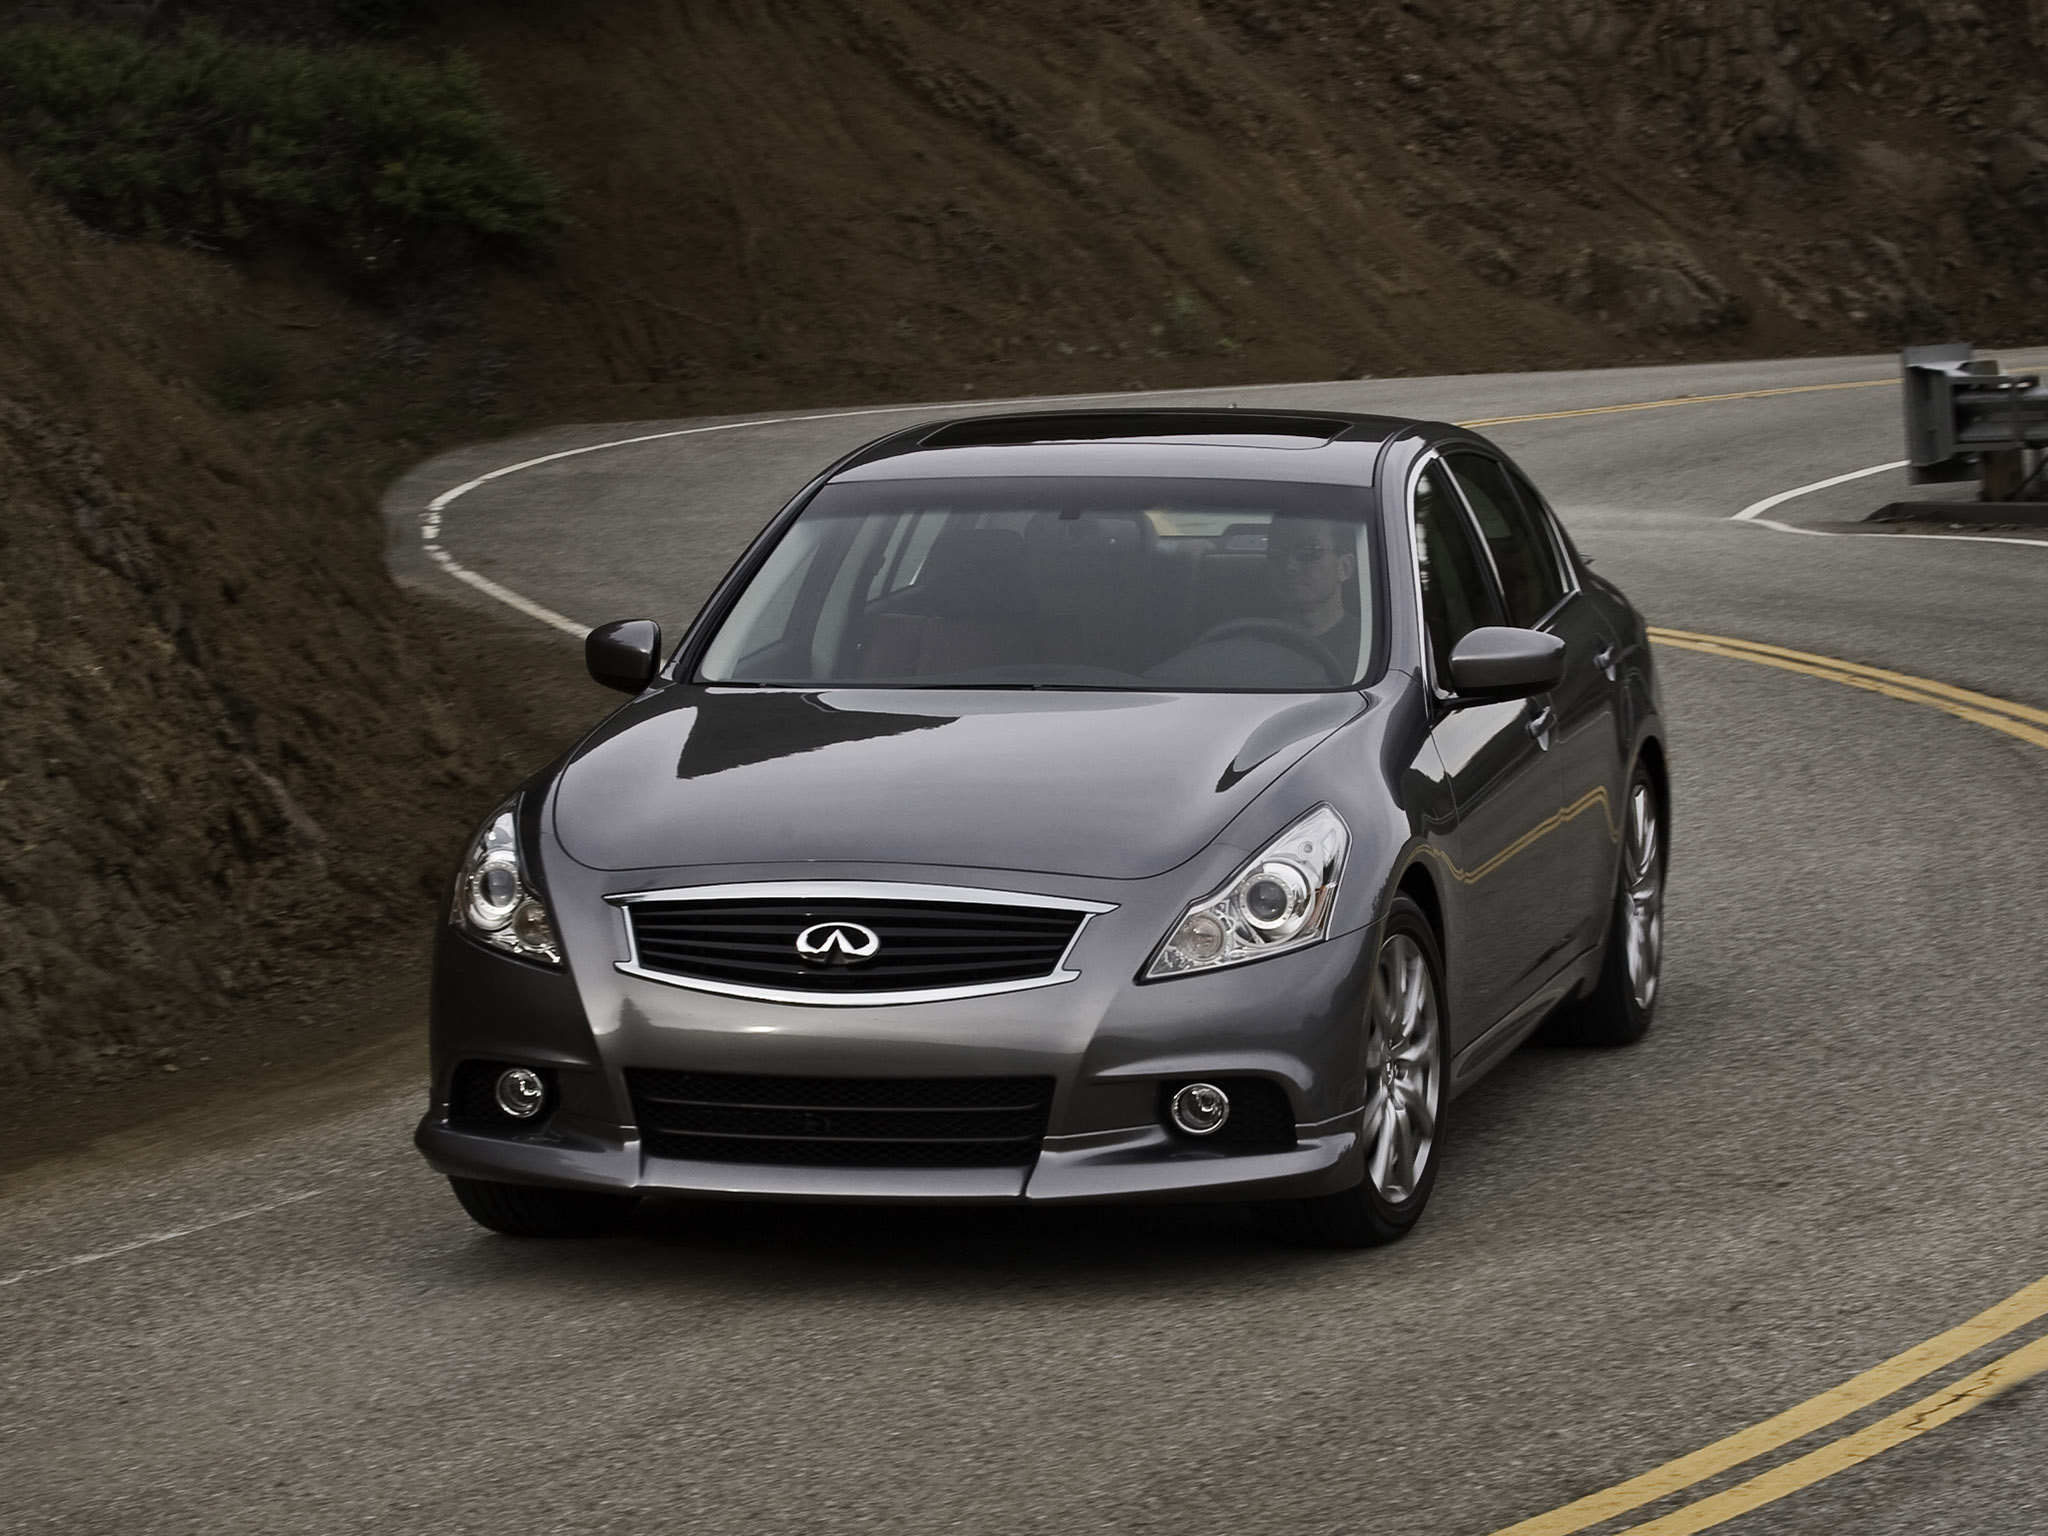 2010 infiniti g37 sedan information and photos momentcar. Black Bedroom Furniture Sets. Home Design Ideas